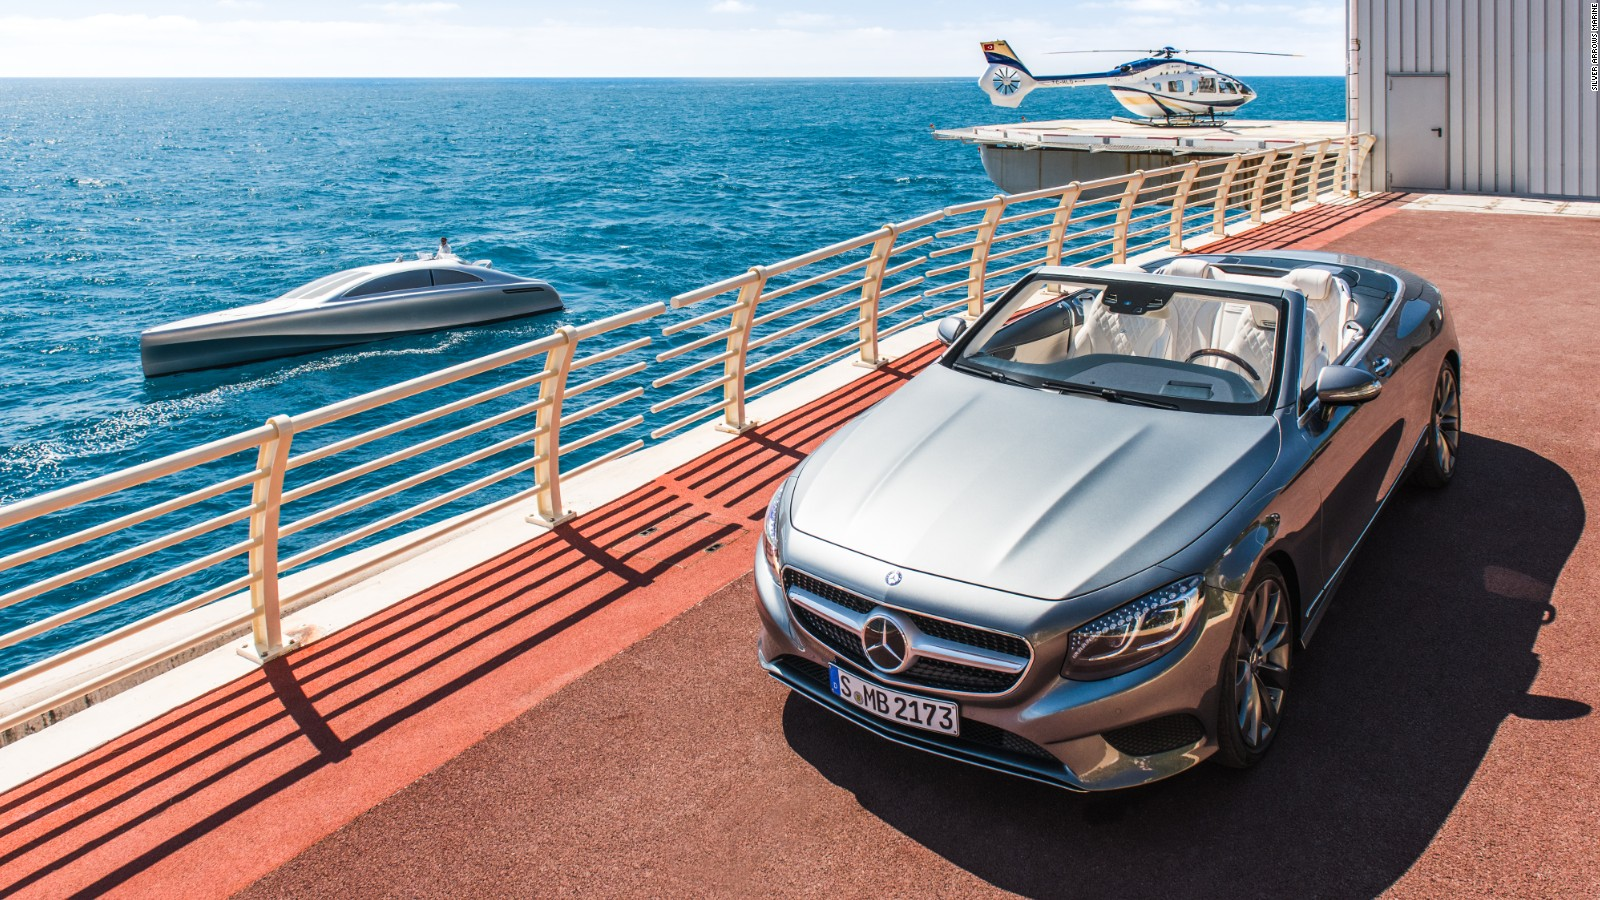 Mercedes Benz Swaps Cars For Yachts With Arrow460 Granturismo